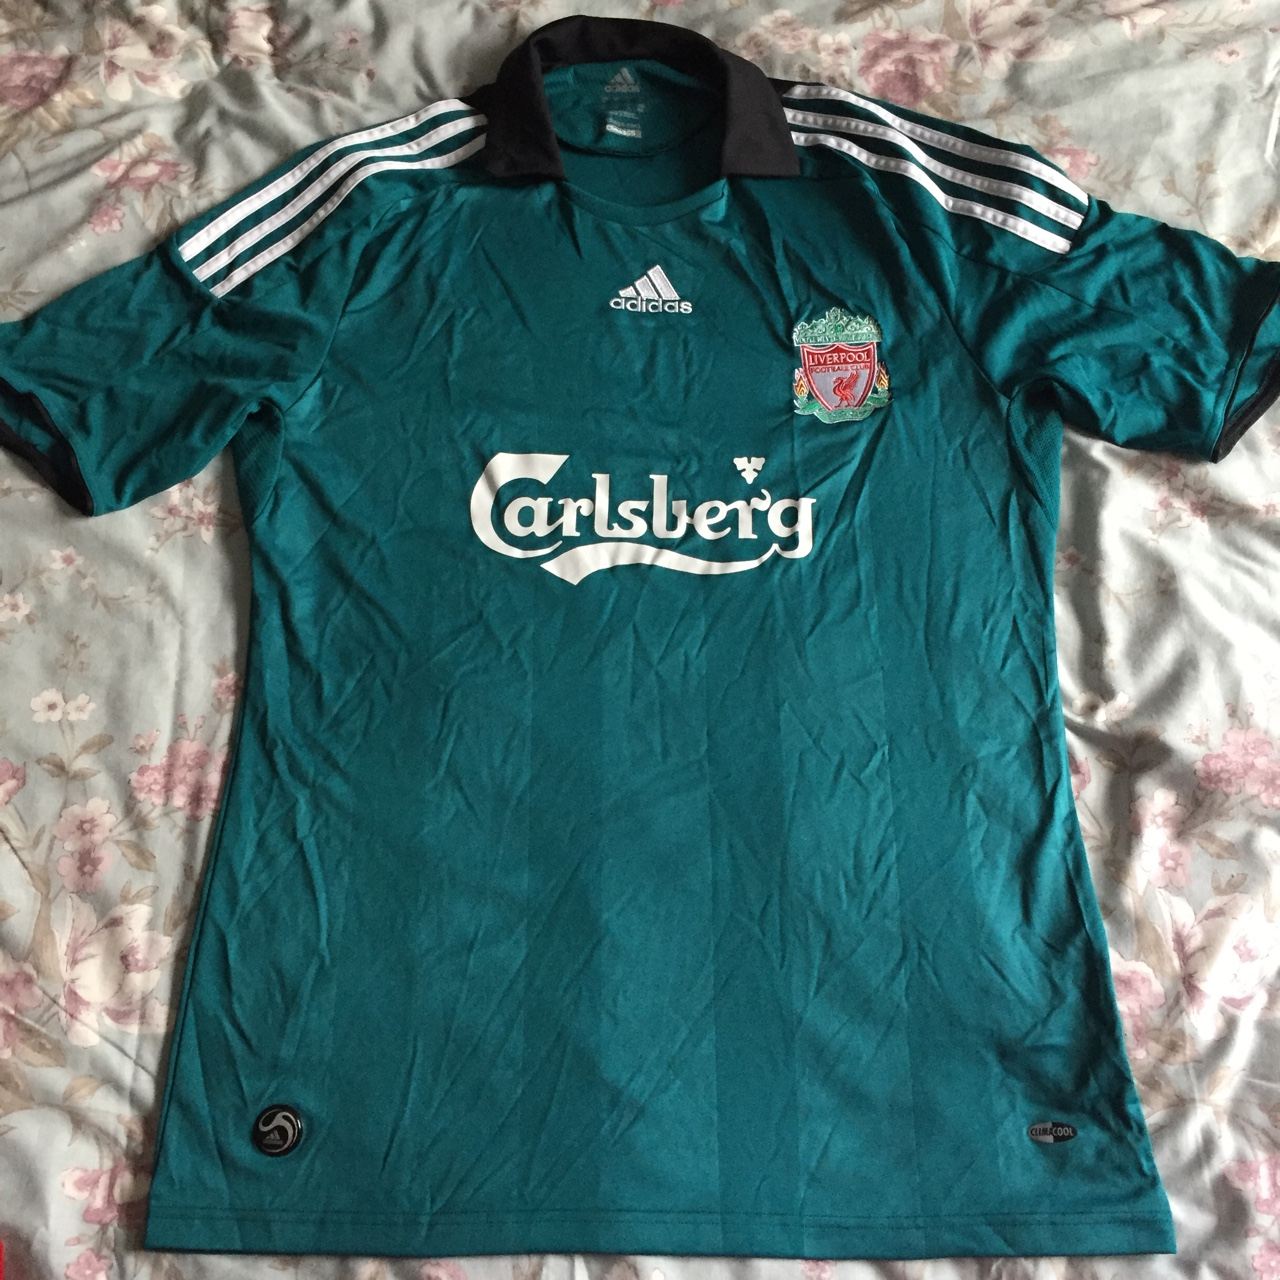 sneakers for cheap c90a5 60152 Liverpool adidas football green shirt top, perfect... - Depop